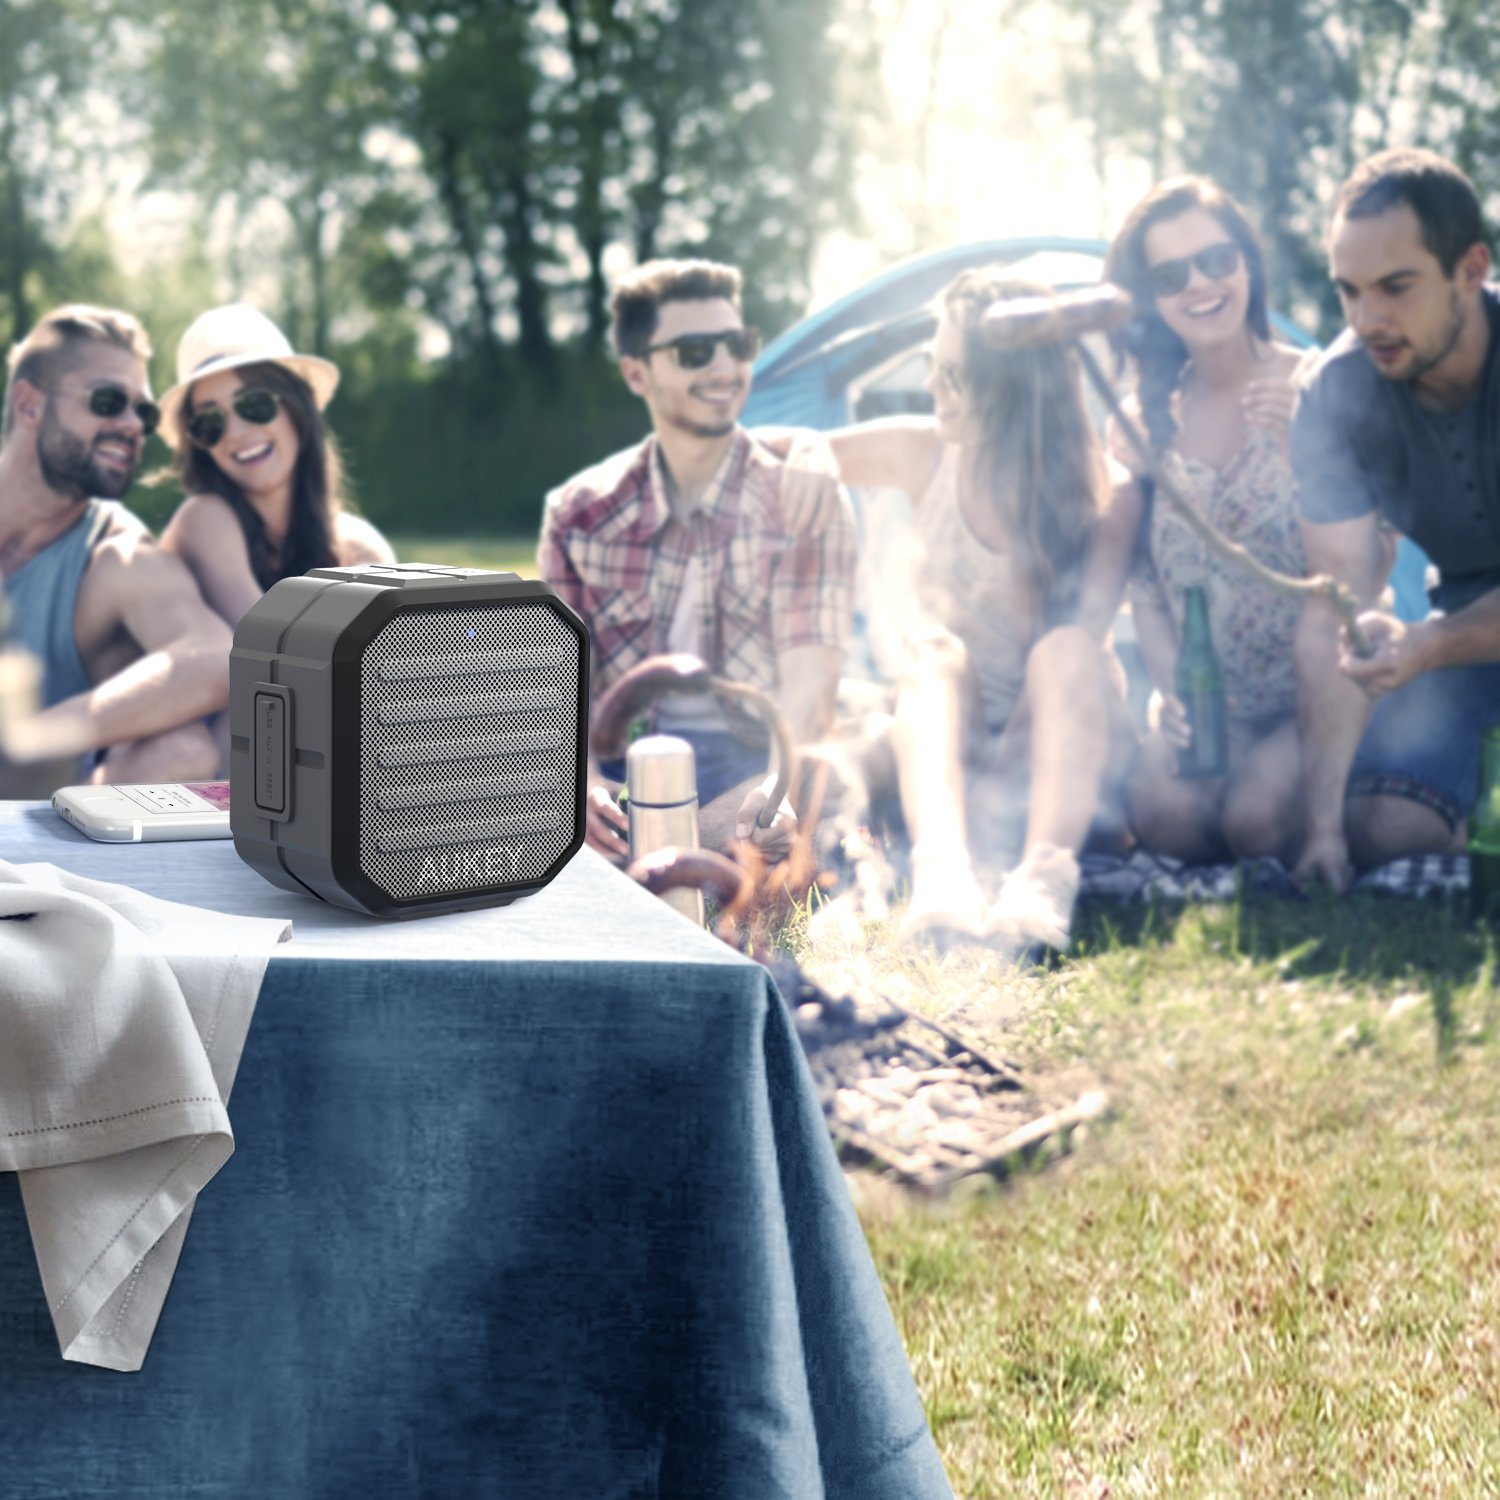 AUKEY Portable Bluetooth Speakers with Enhanced Bass and Built in Mic Outdoor Wireless Speaker Water Resistant for iPhone, iPad, Samsung by AUKEY (Image #4)